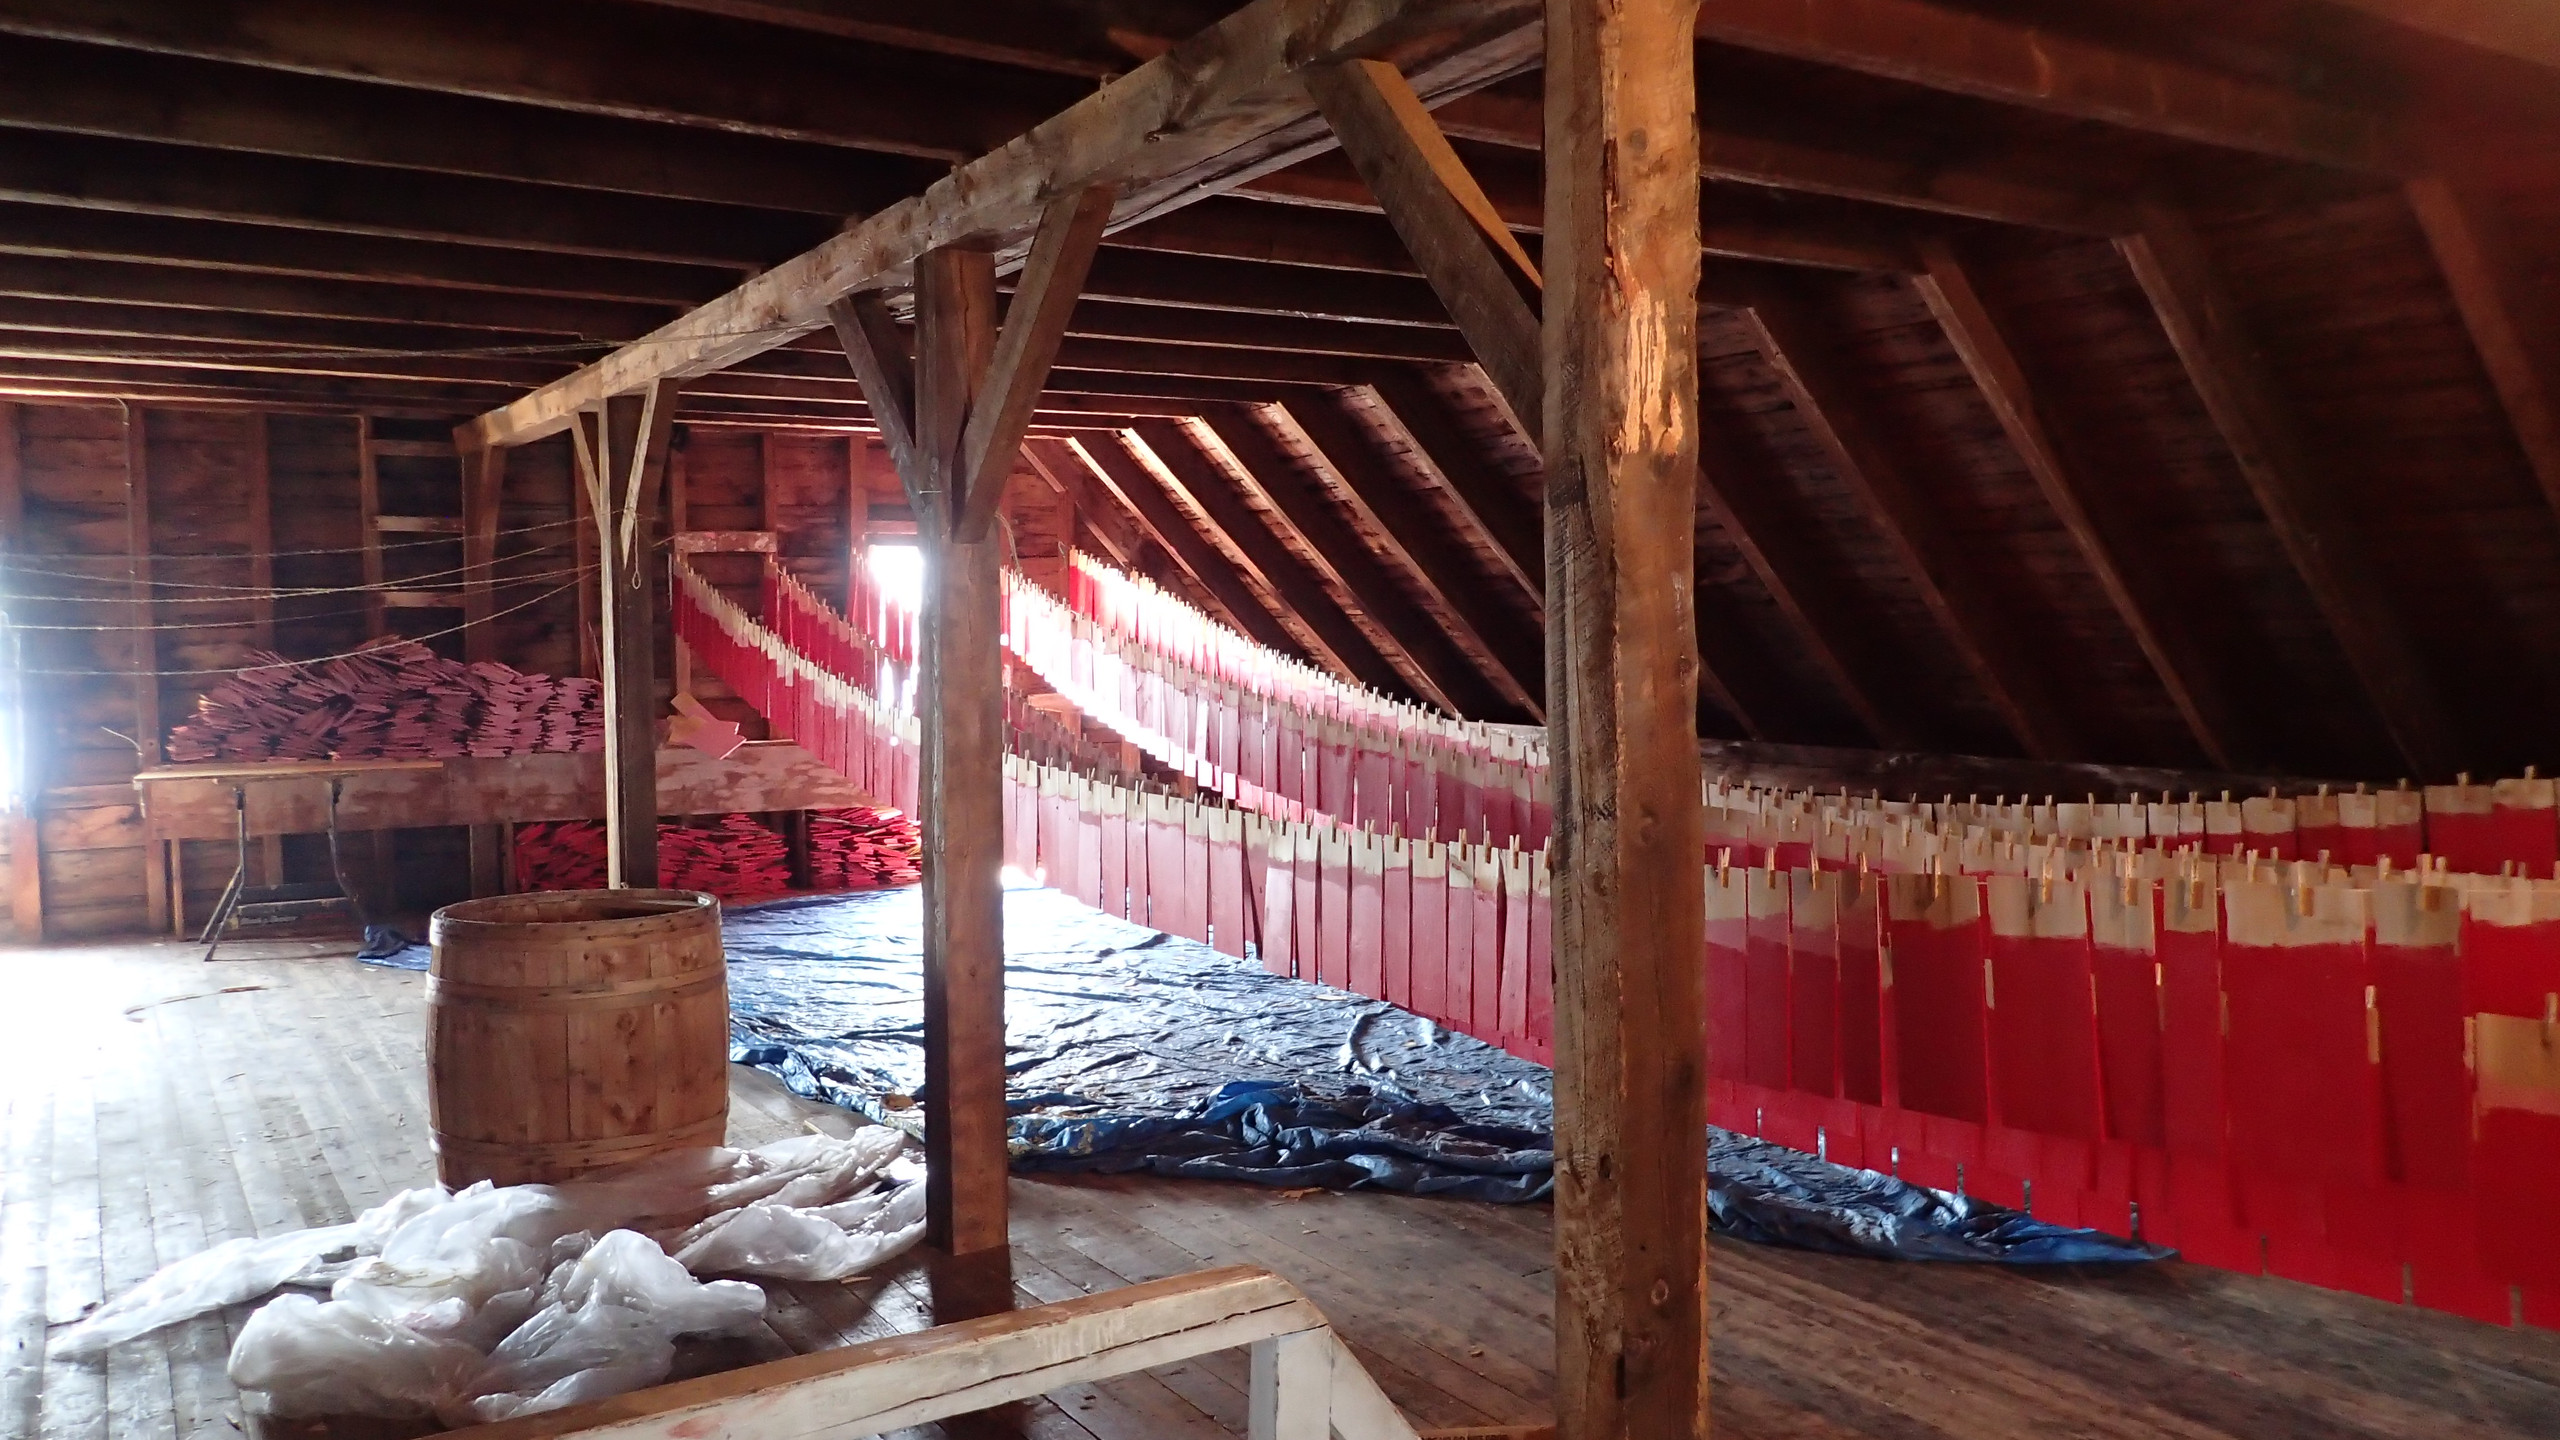 Shingles drying in the attic.